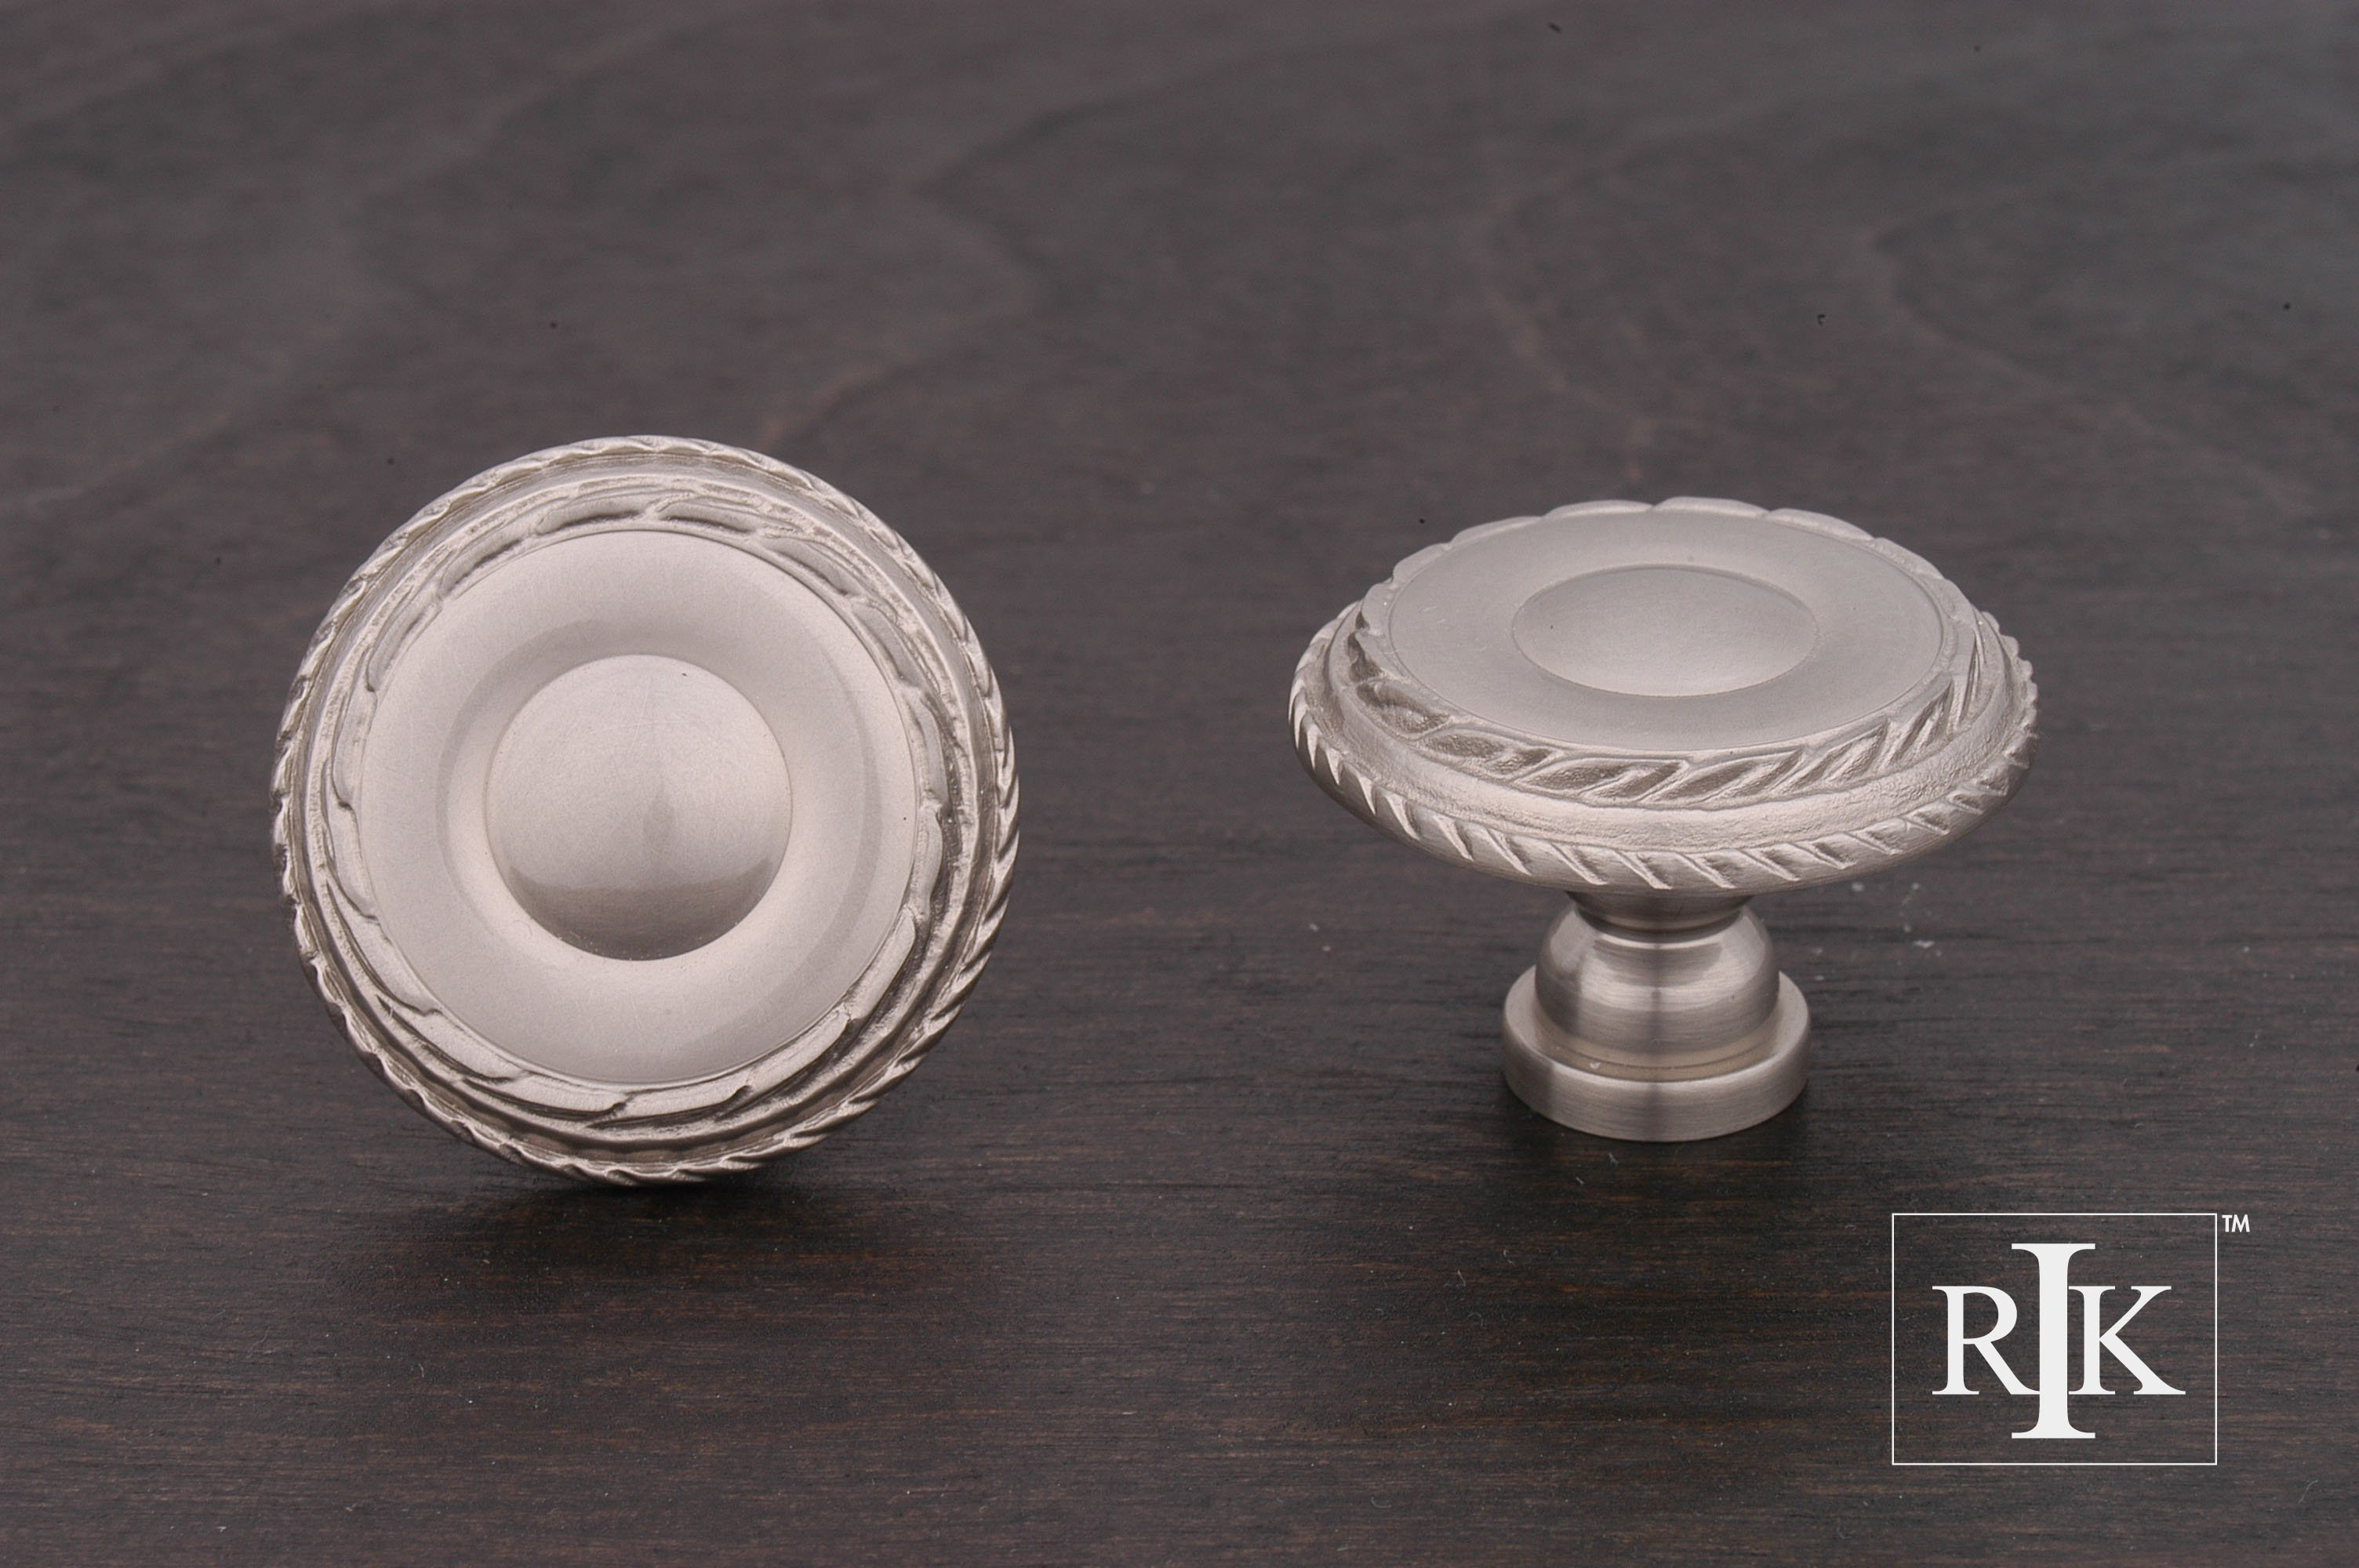 Rk international ck705 large double roped edge knob home for Decor products international